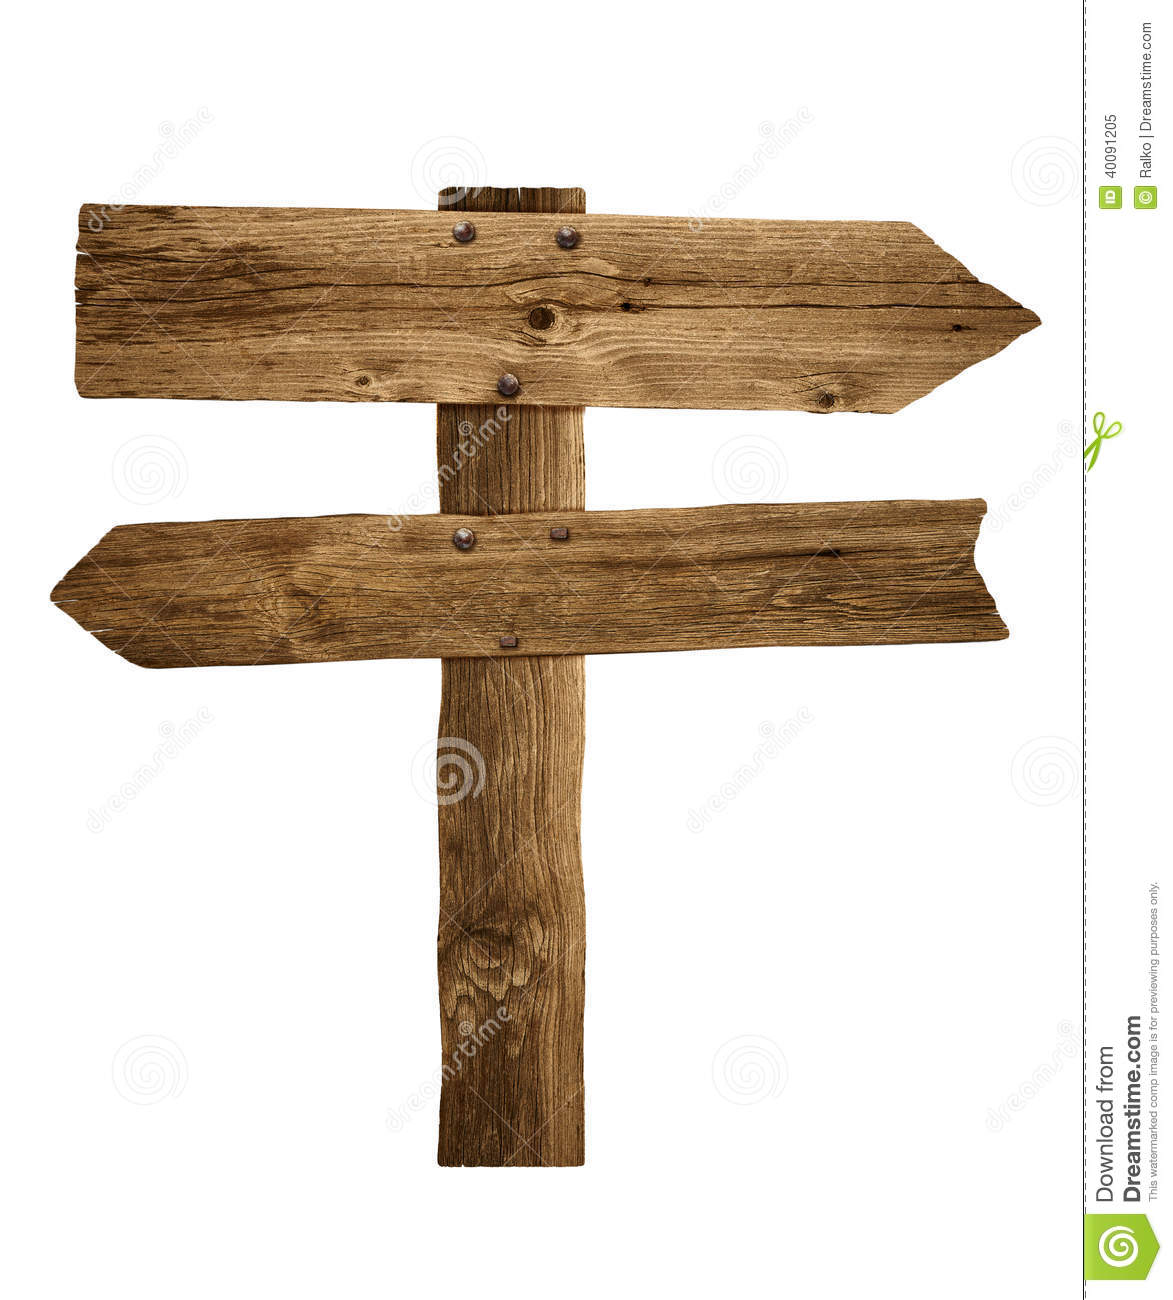 Wooden Arrow Sign Post Or Road Signpost